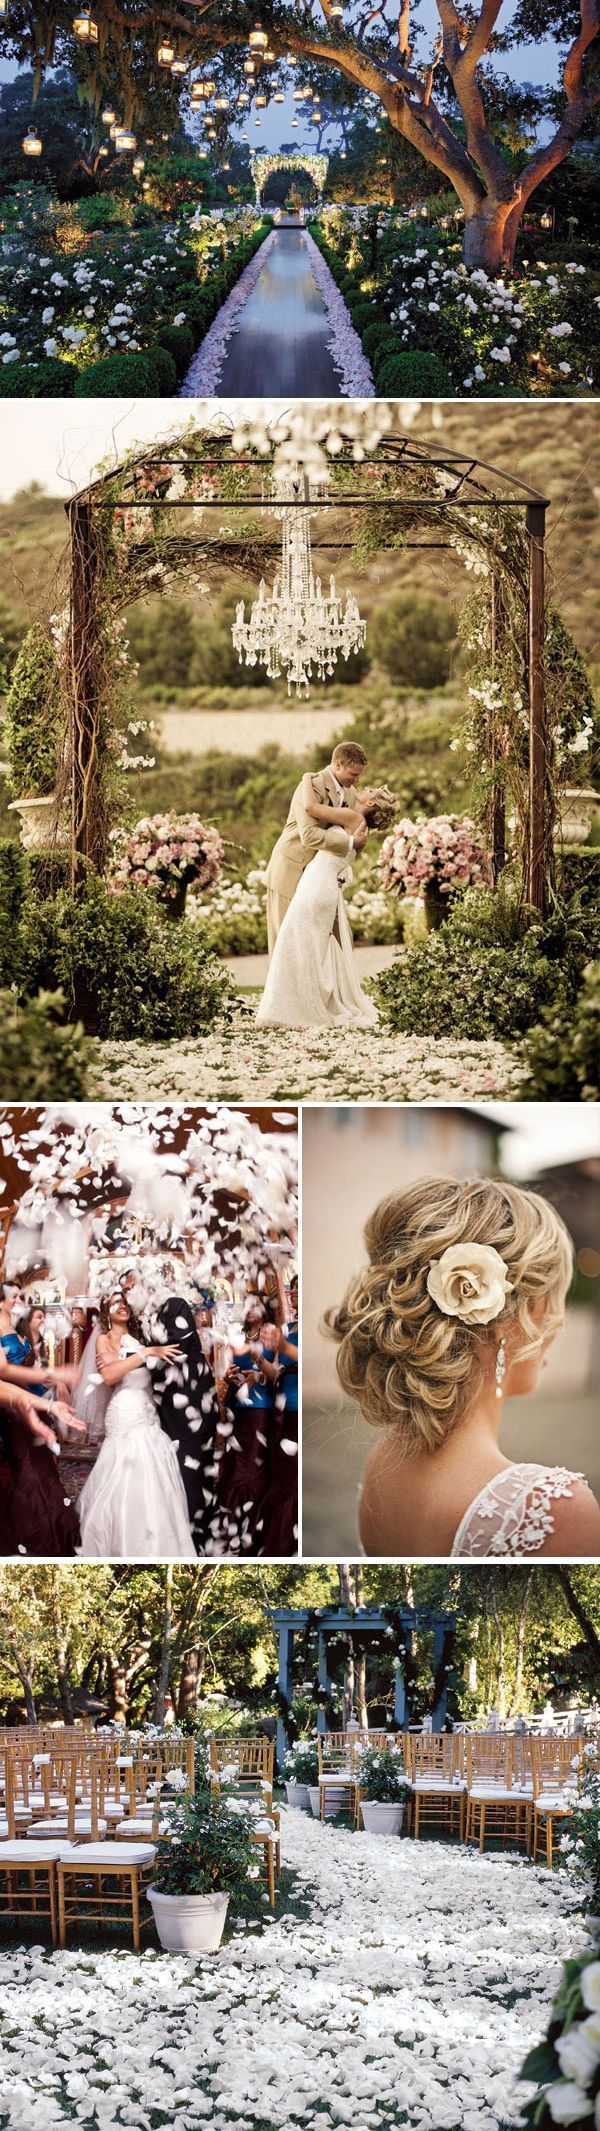 dream wedding ideas best photos - wedding ideas  - cuteweddingideas.com